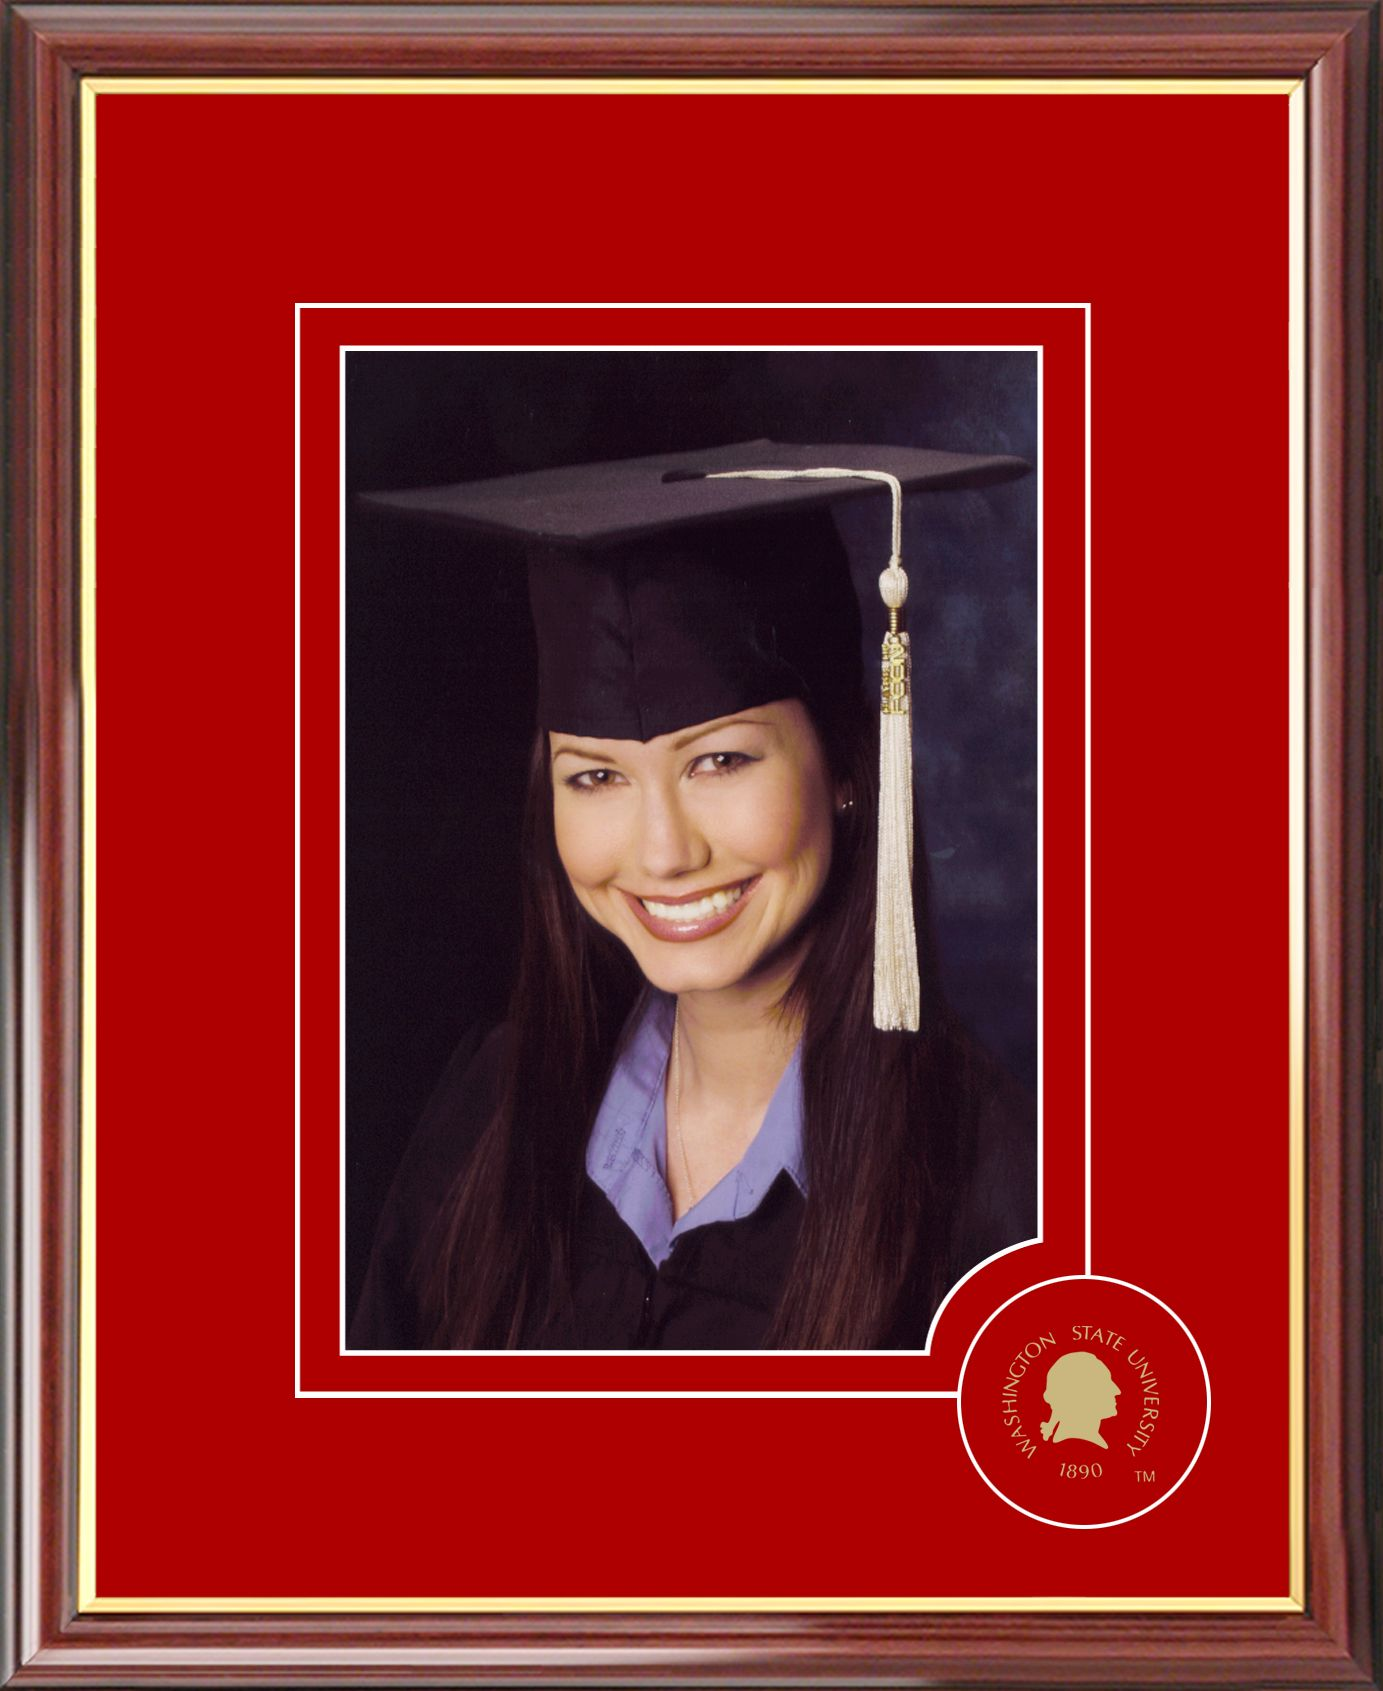 Washington State University of Washington 5X7 Graduate Portrait Frame